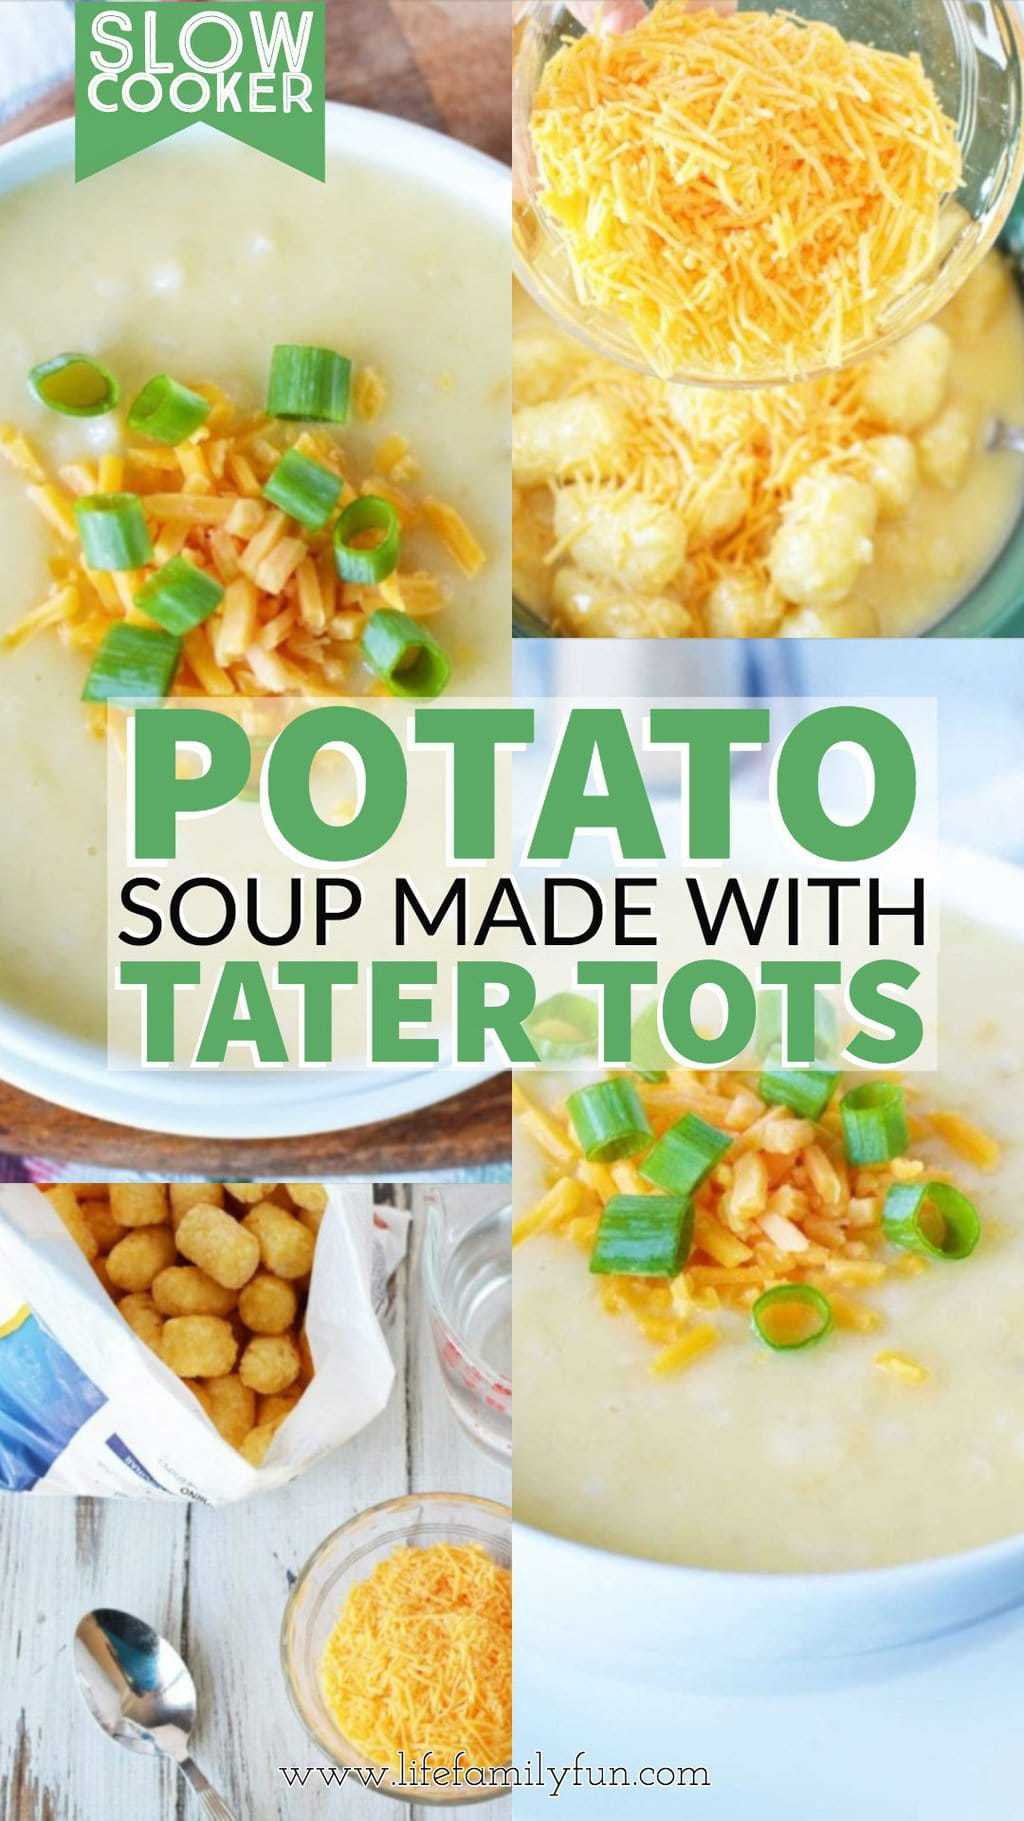 Slow cooker Potato Soup with Tater Tots